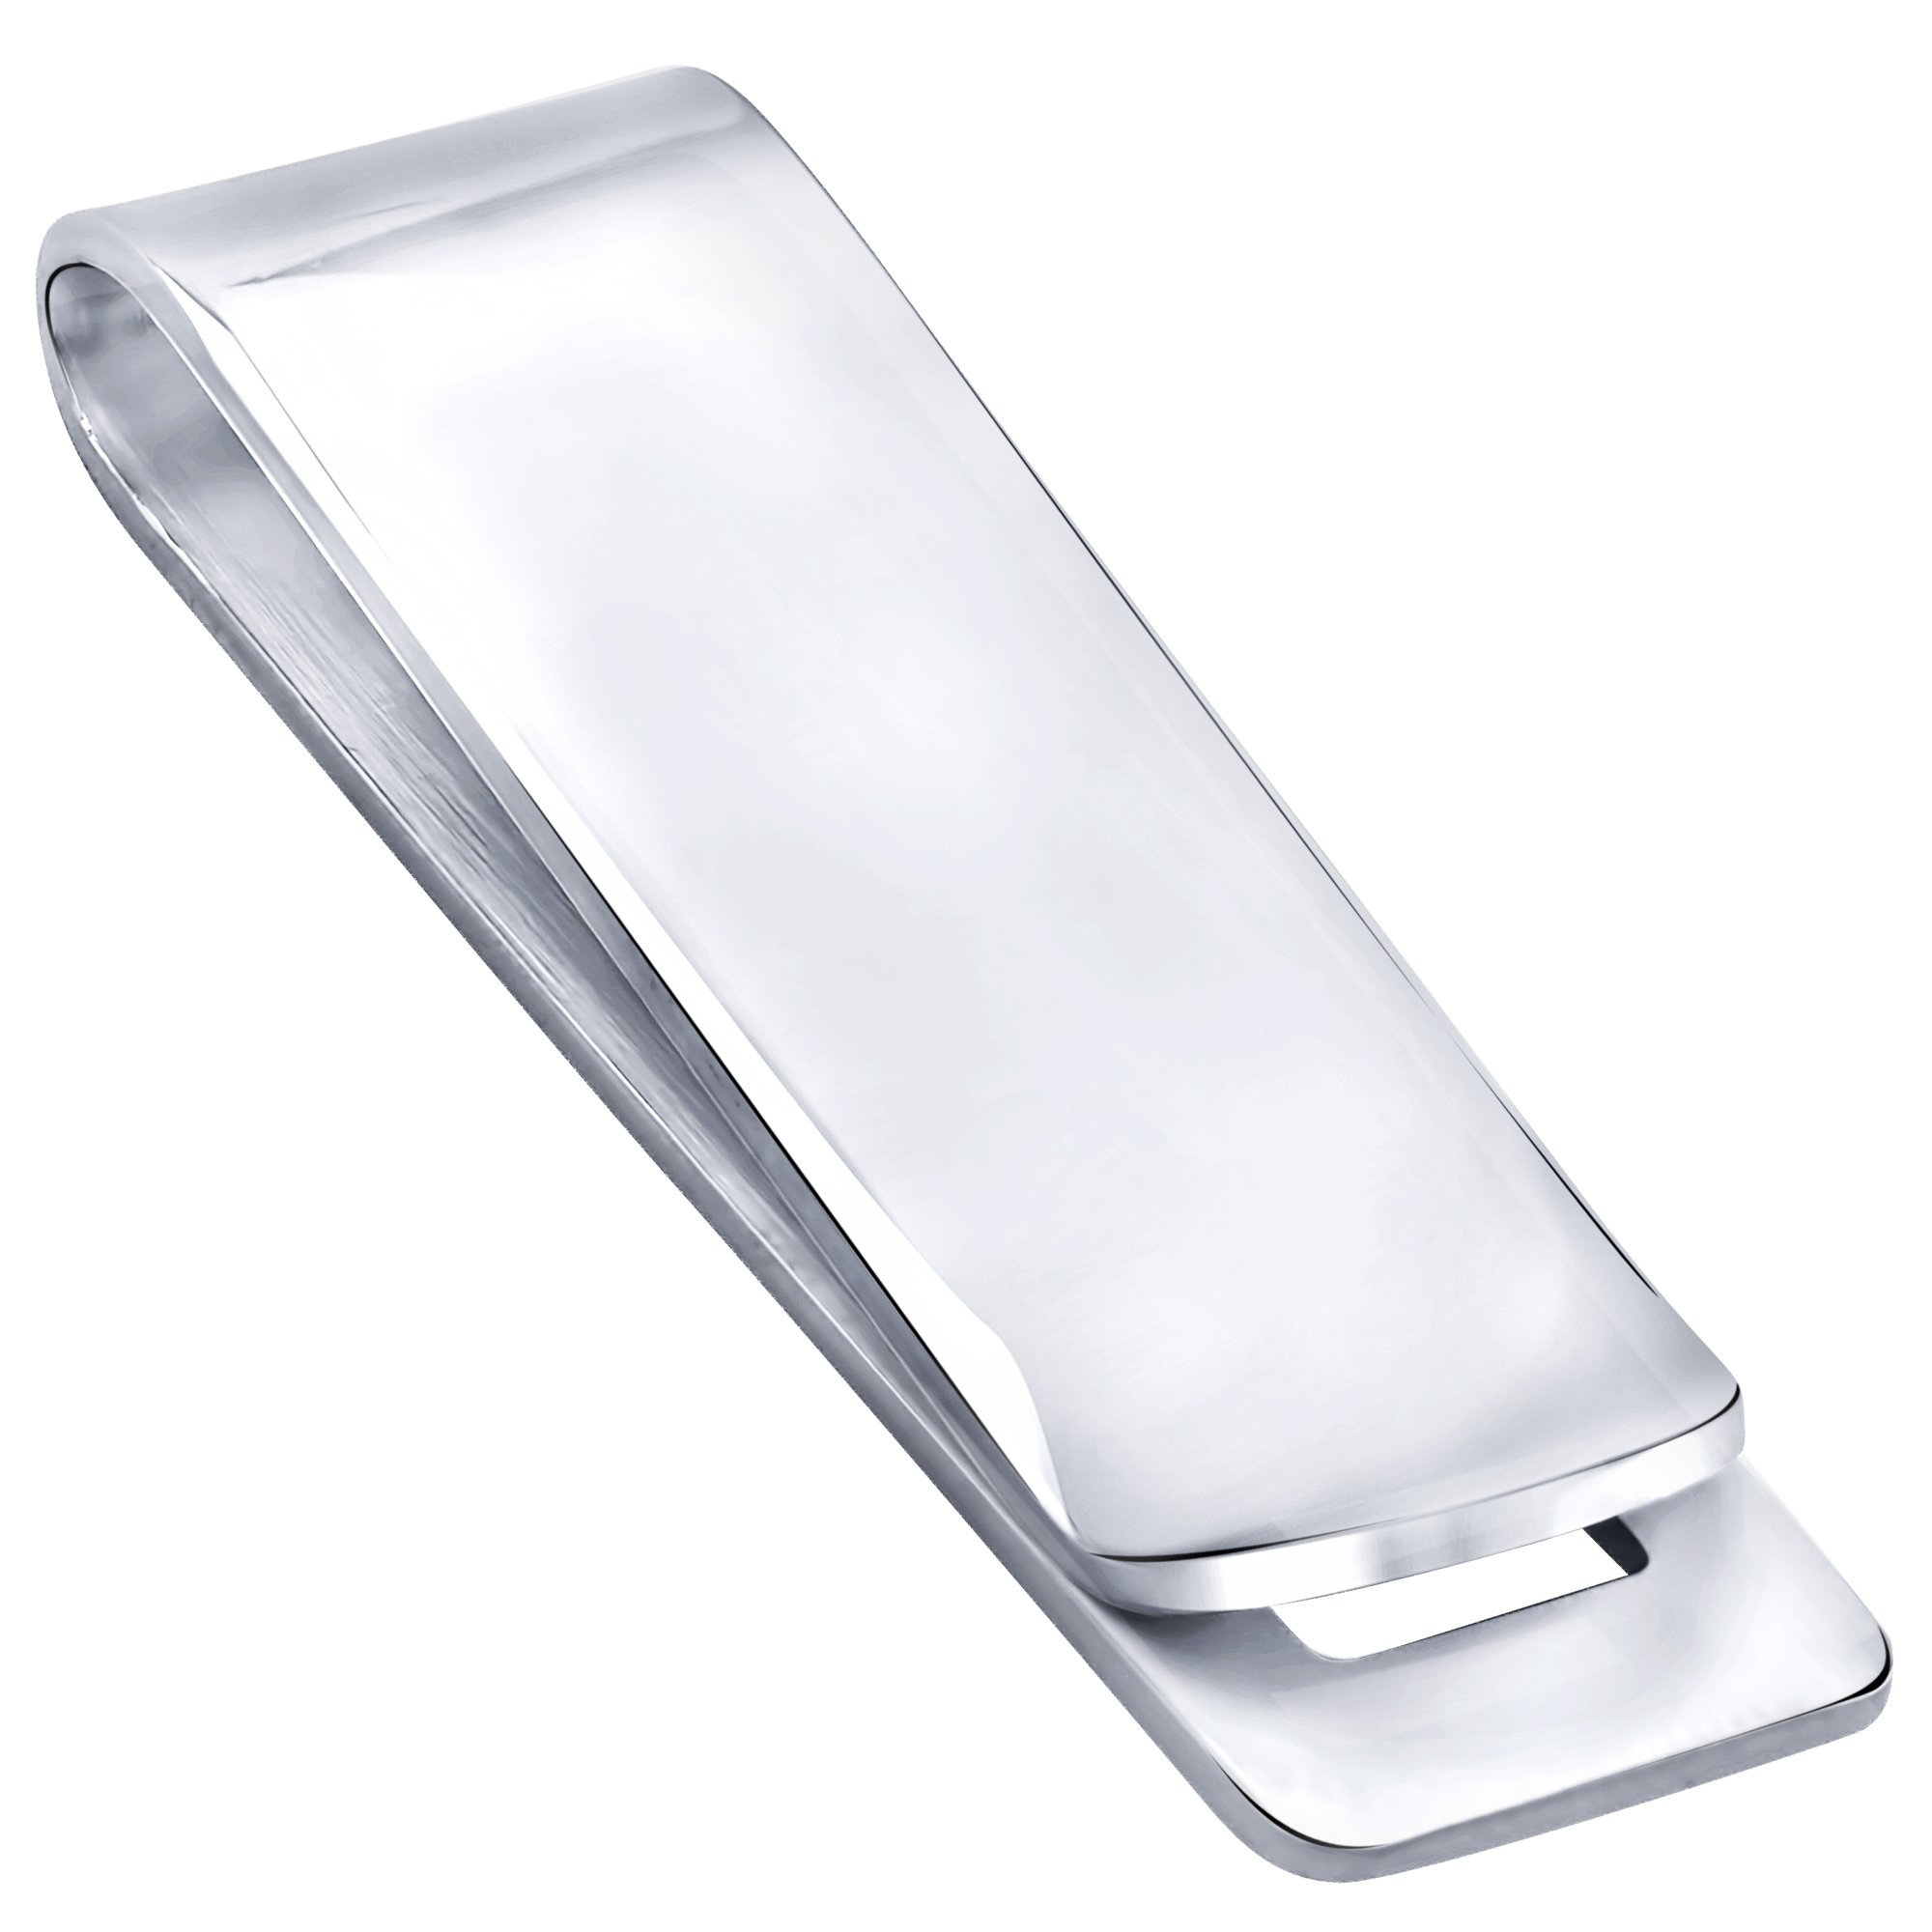 Sterling Silver .925 Money Clip, Engravable, Elegant and Solid. Designed and Made In Italy. By Sterling Manufacturers